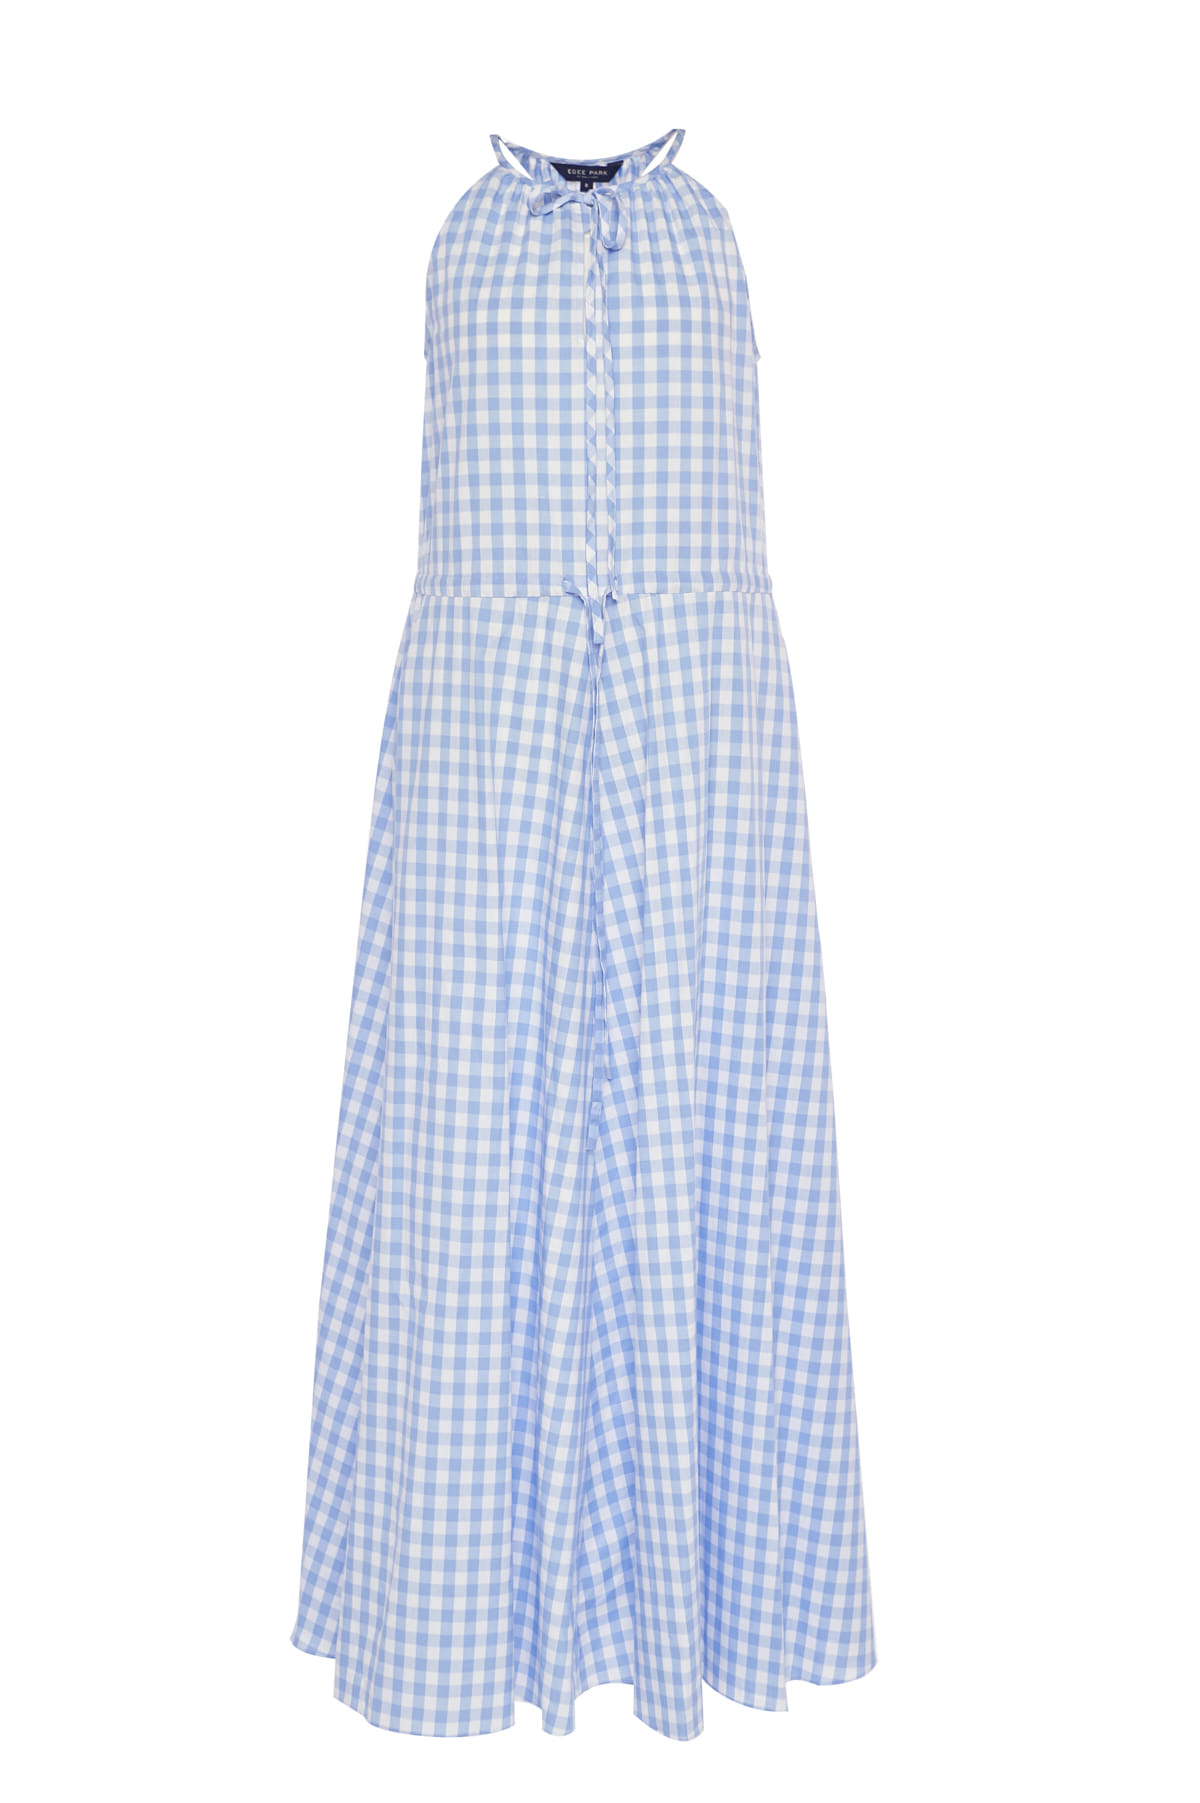 GINGHAM LONG DRESS